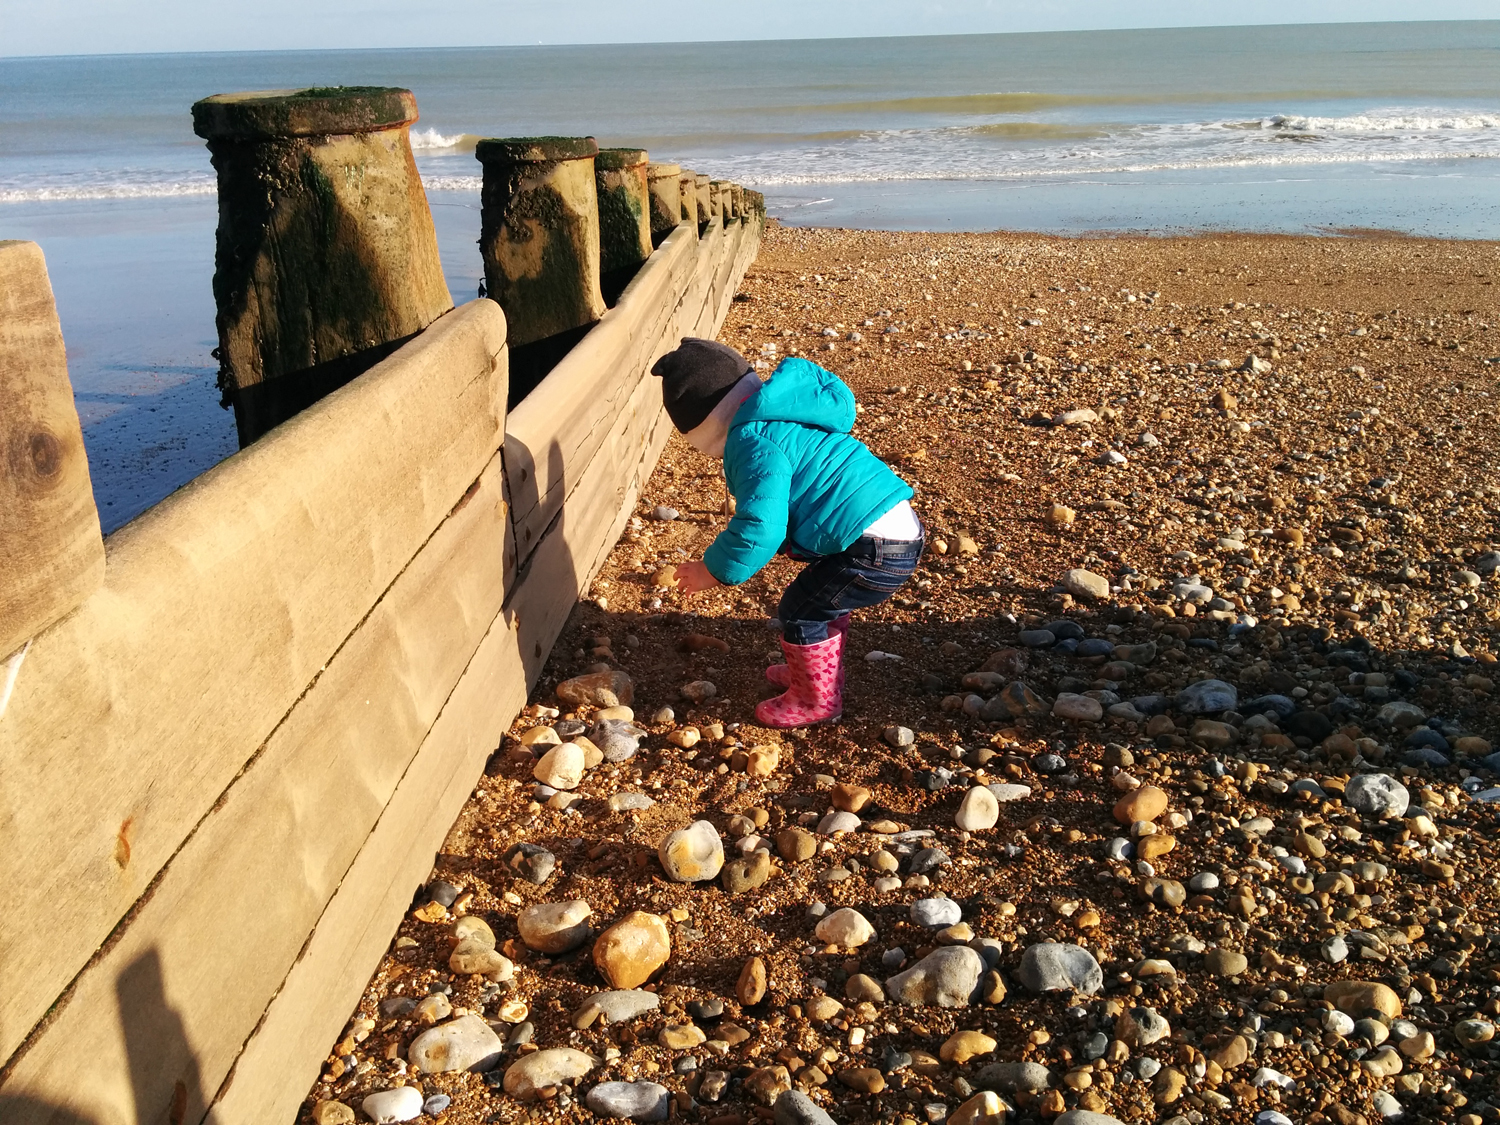 Hazel picking up stones